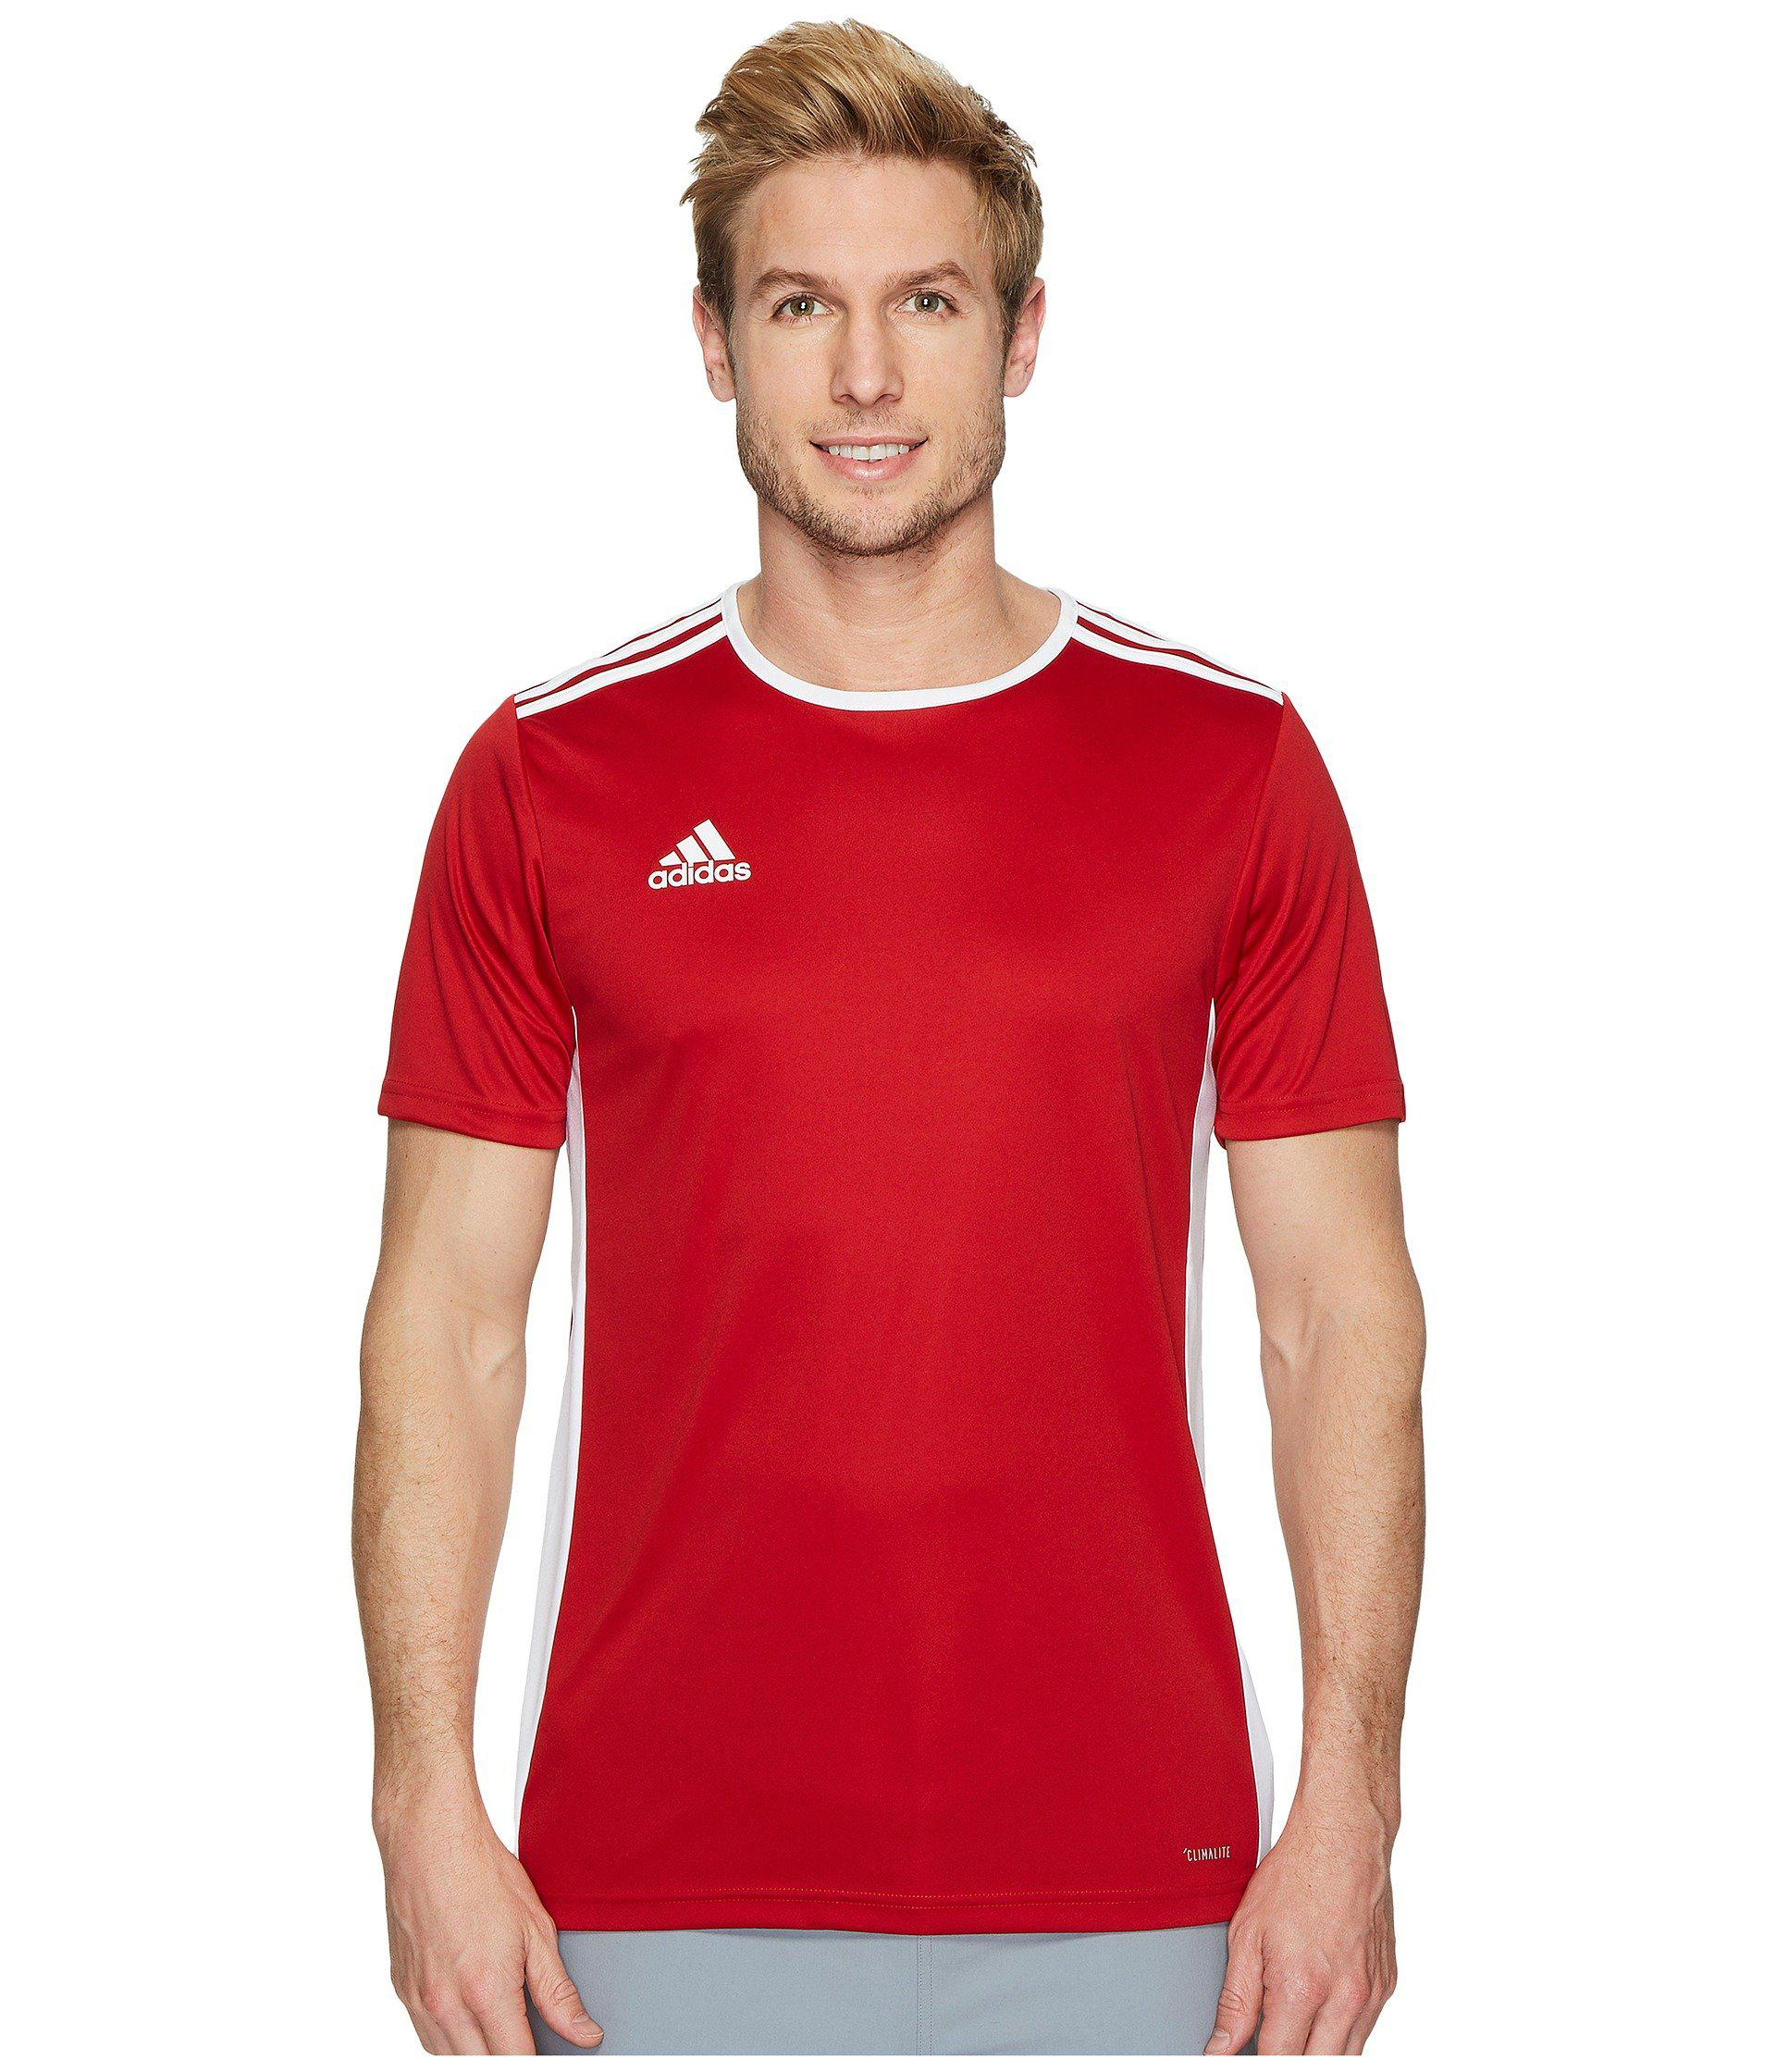 Lyst - adidas Entrada 18 Jersey in Red for Men - Save 16% 5034342c0